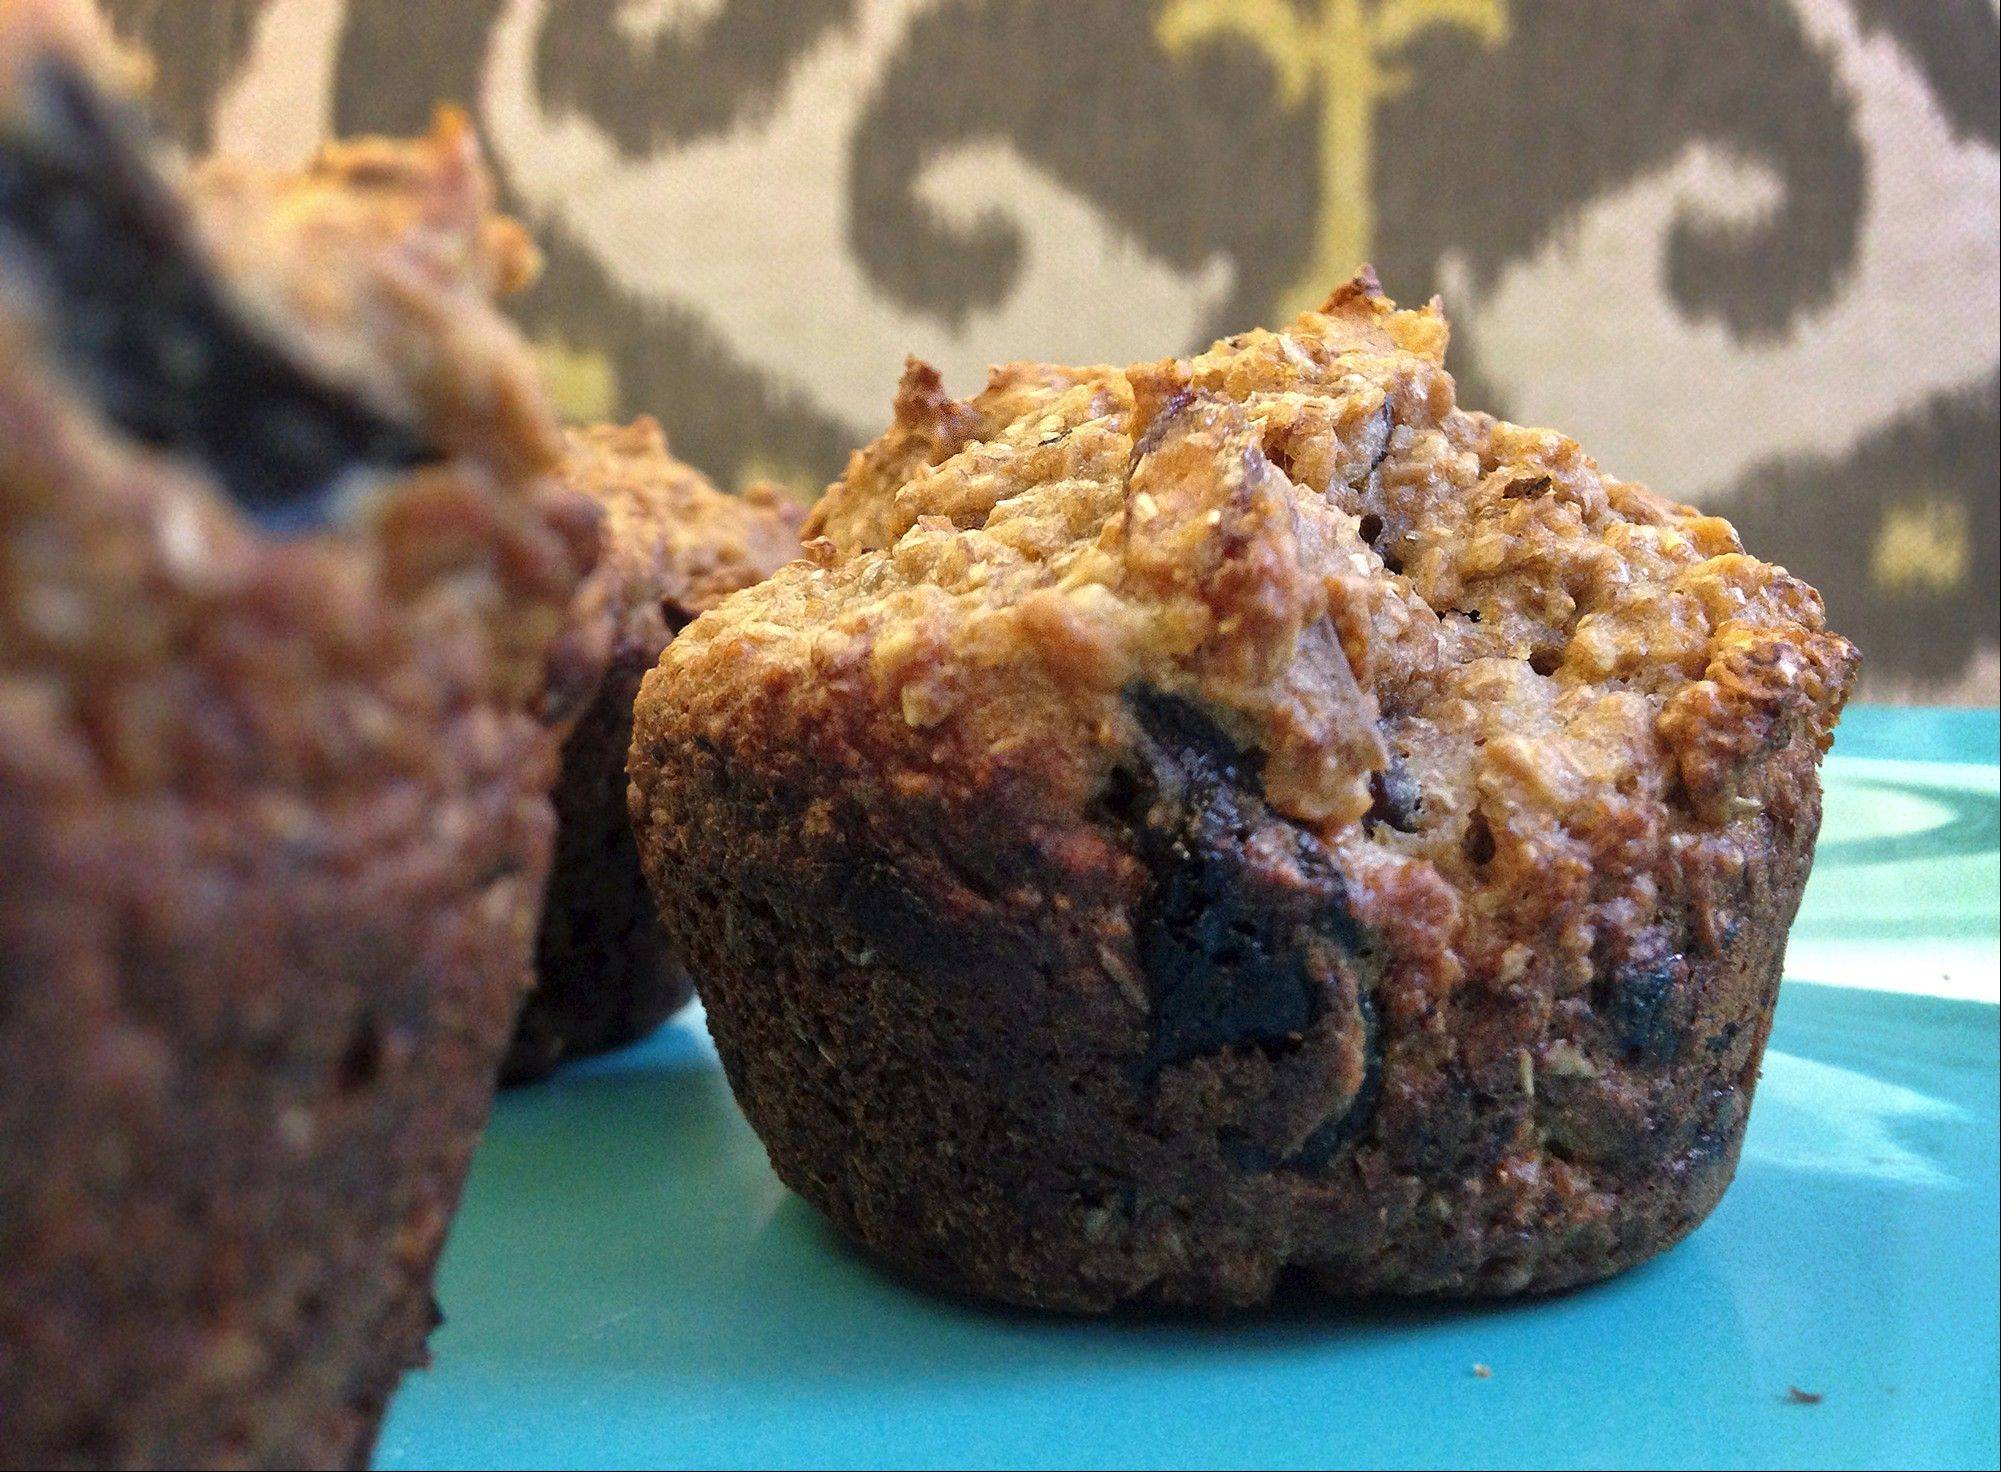 Bananas make bran muffins pretty darn tasty